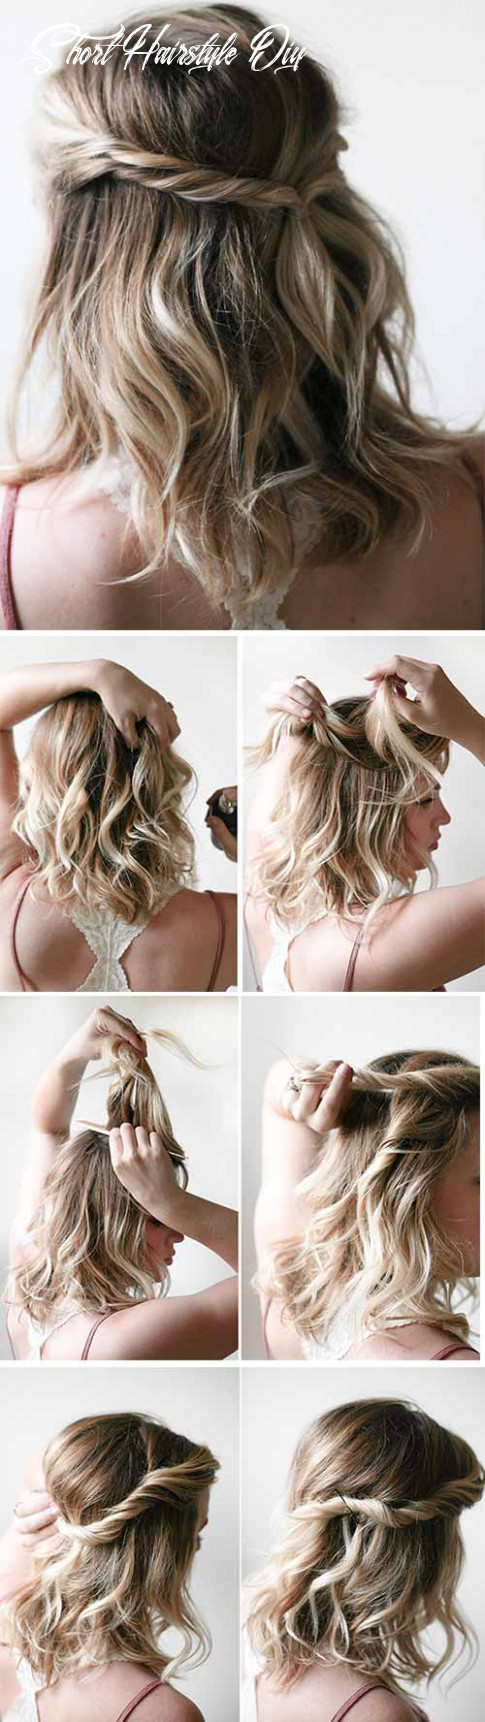 10 incredible diy short hairstyles a step by step guide short hairstyle diy